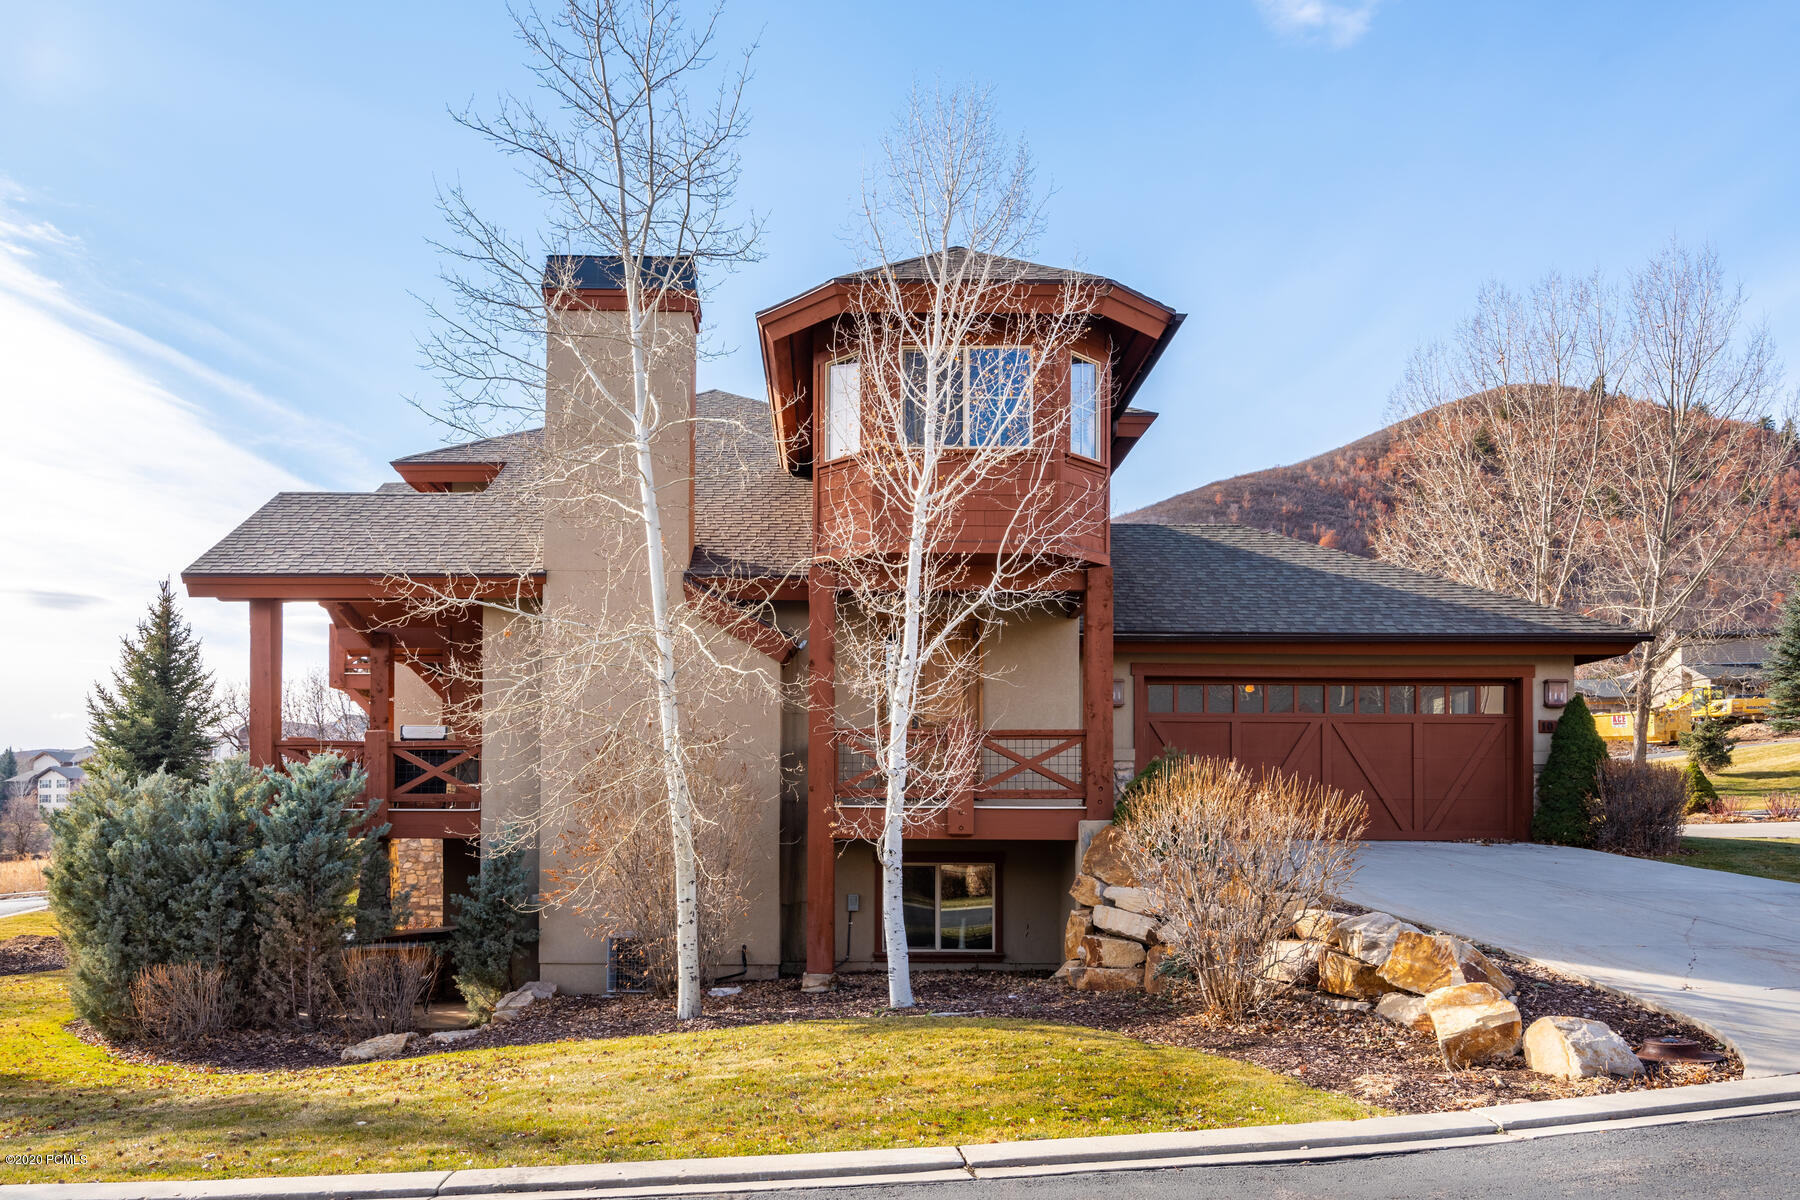 1075 Turnberry Court, Midway, Utah 84049, 4 Bedrooms Bedrooms, ,4 BathroomsBathrooms,Single Family,For Sale,Turnberry,12004524